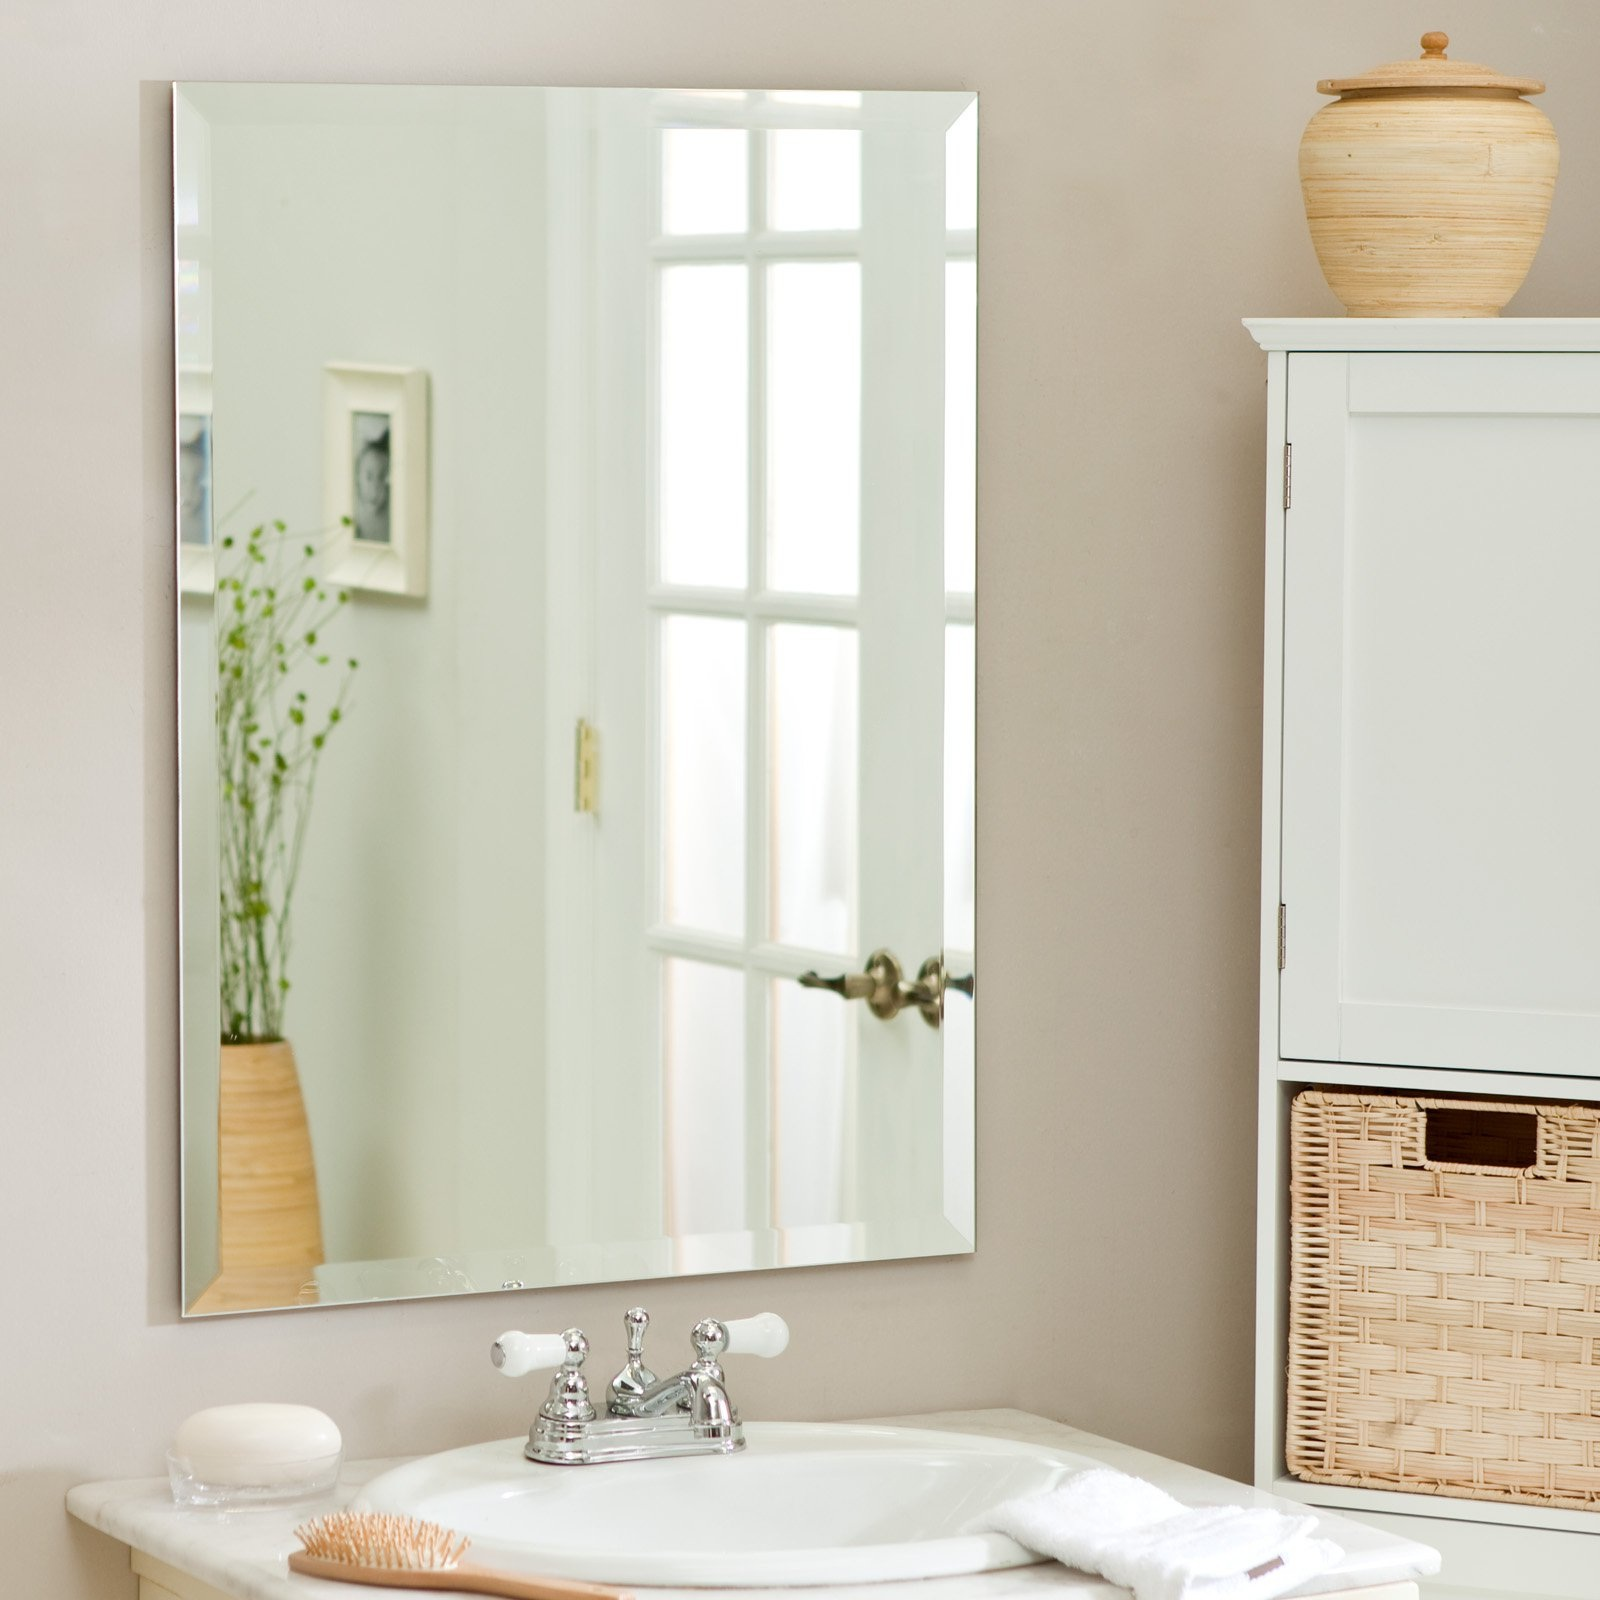 DIY Minimalist Bathroom Mirror (Image 3 of 6)